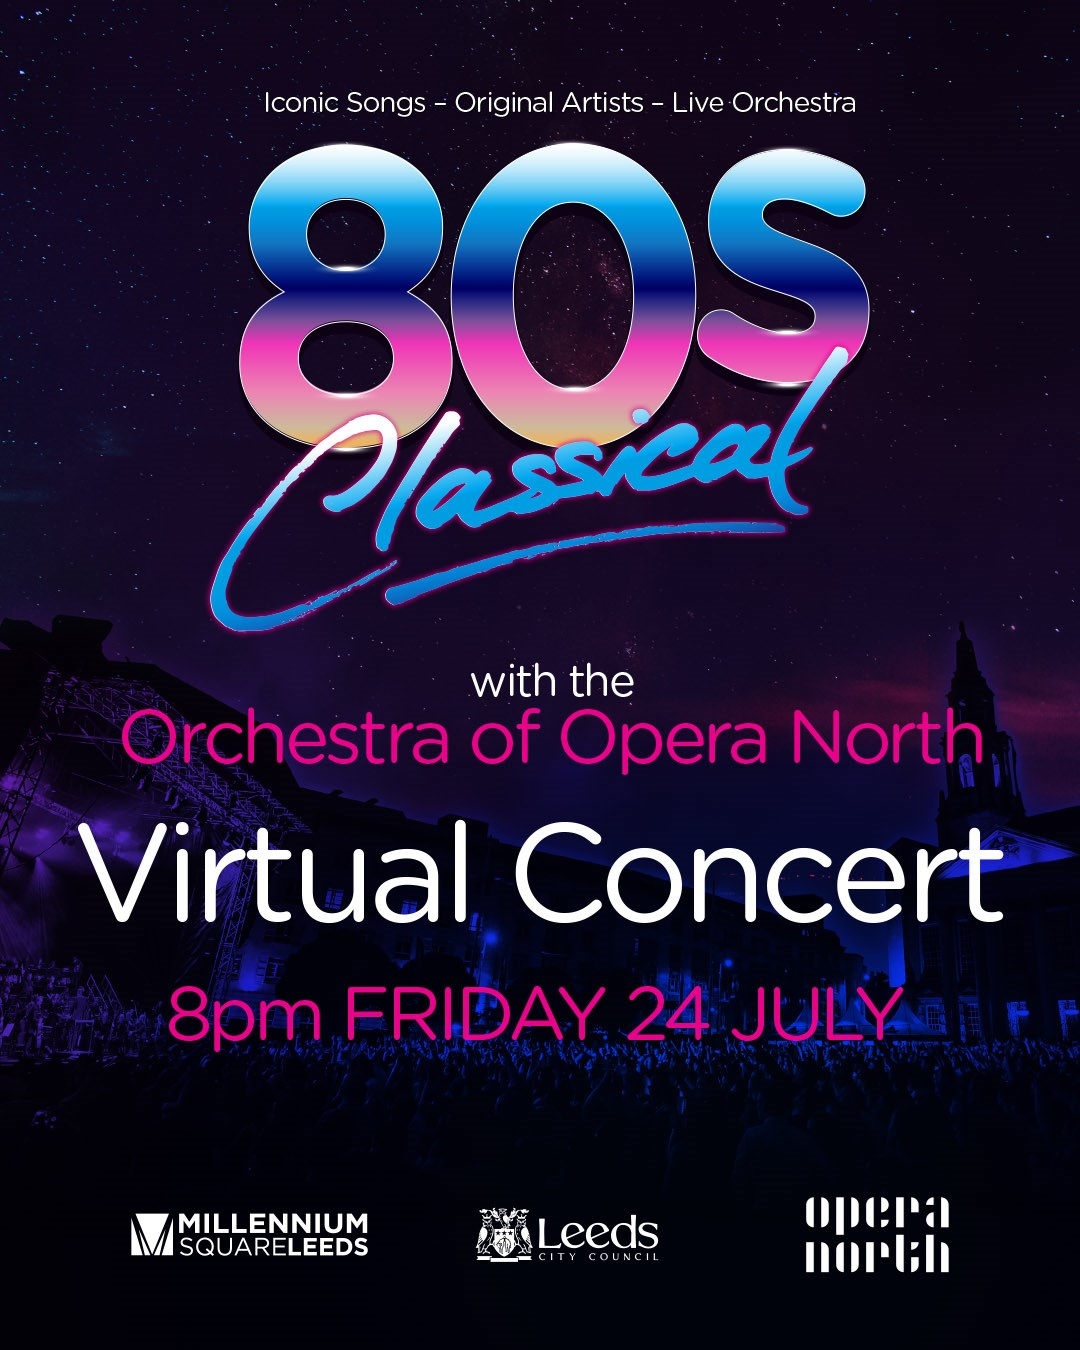 80's Classical 2020 virtual concert 1080x1350px aw